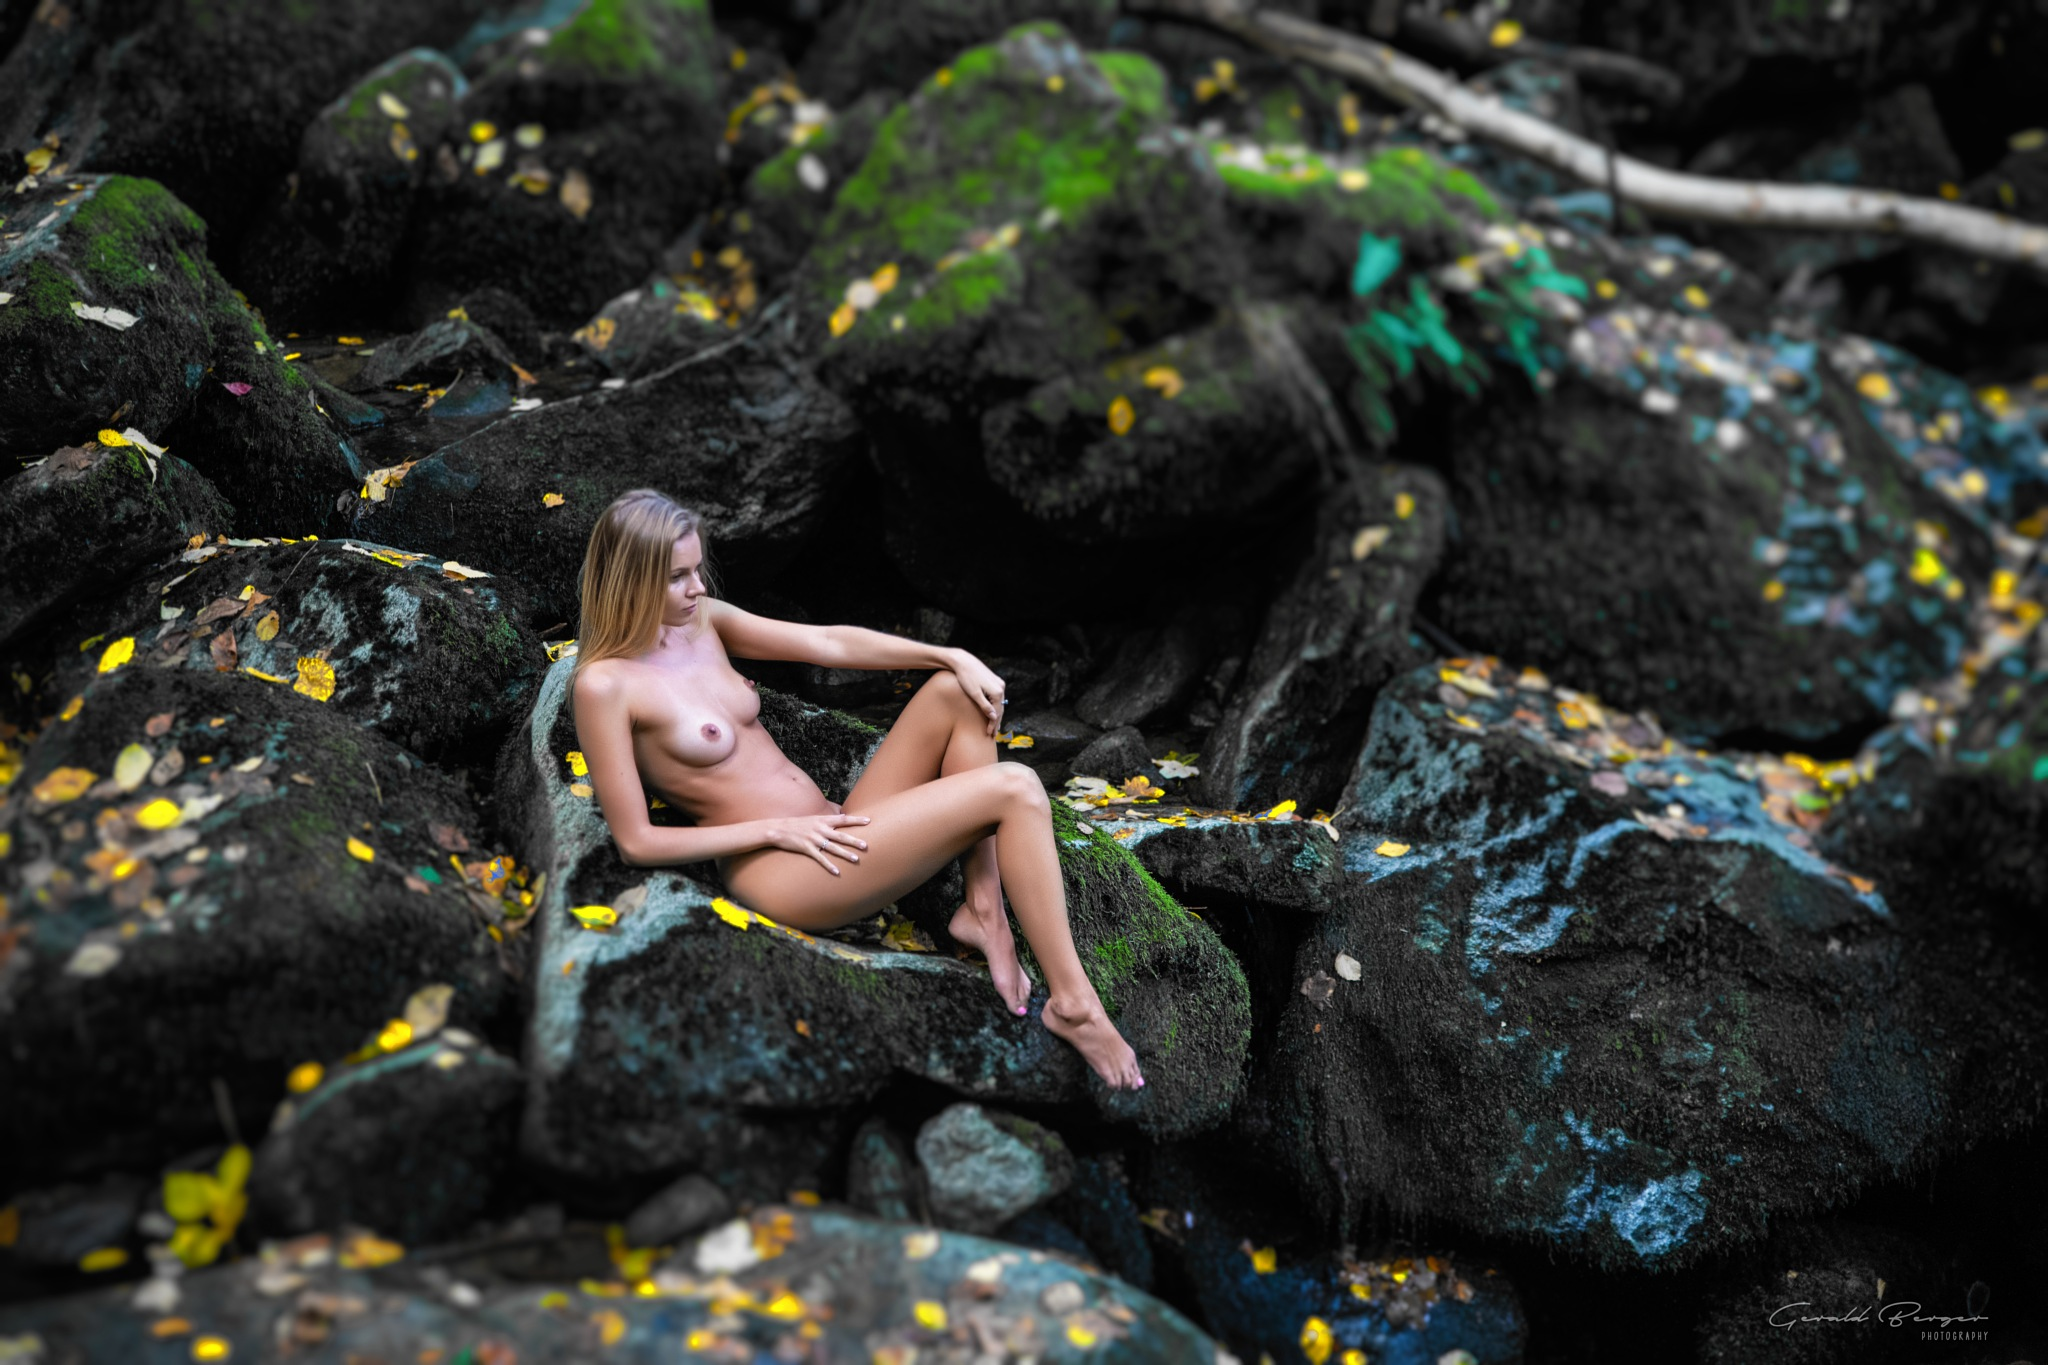 Beauty on the Rocks by Gerald Berger